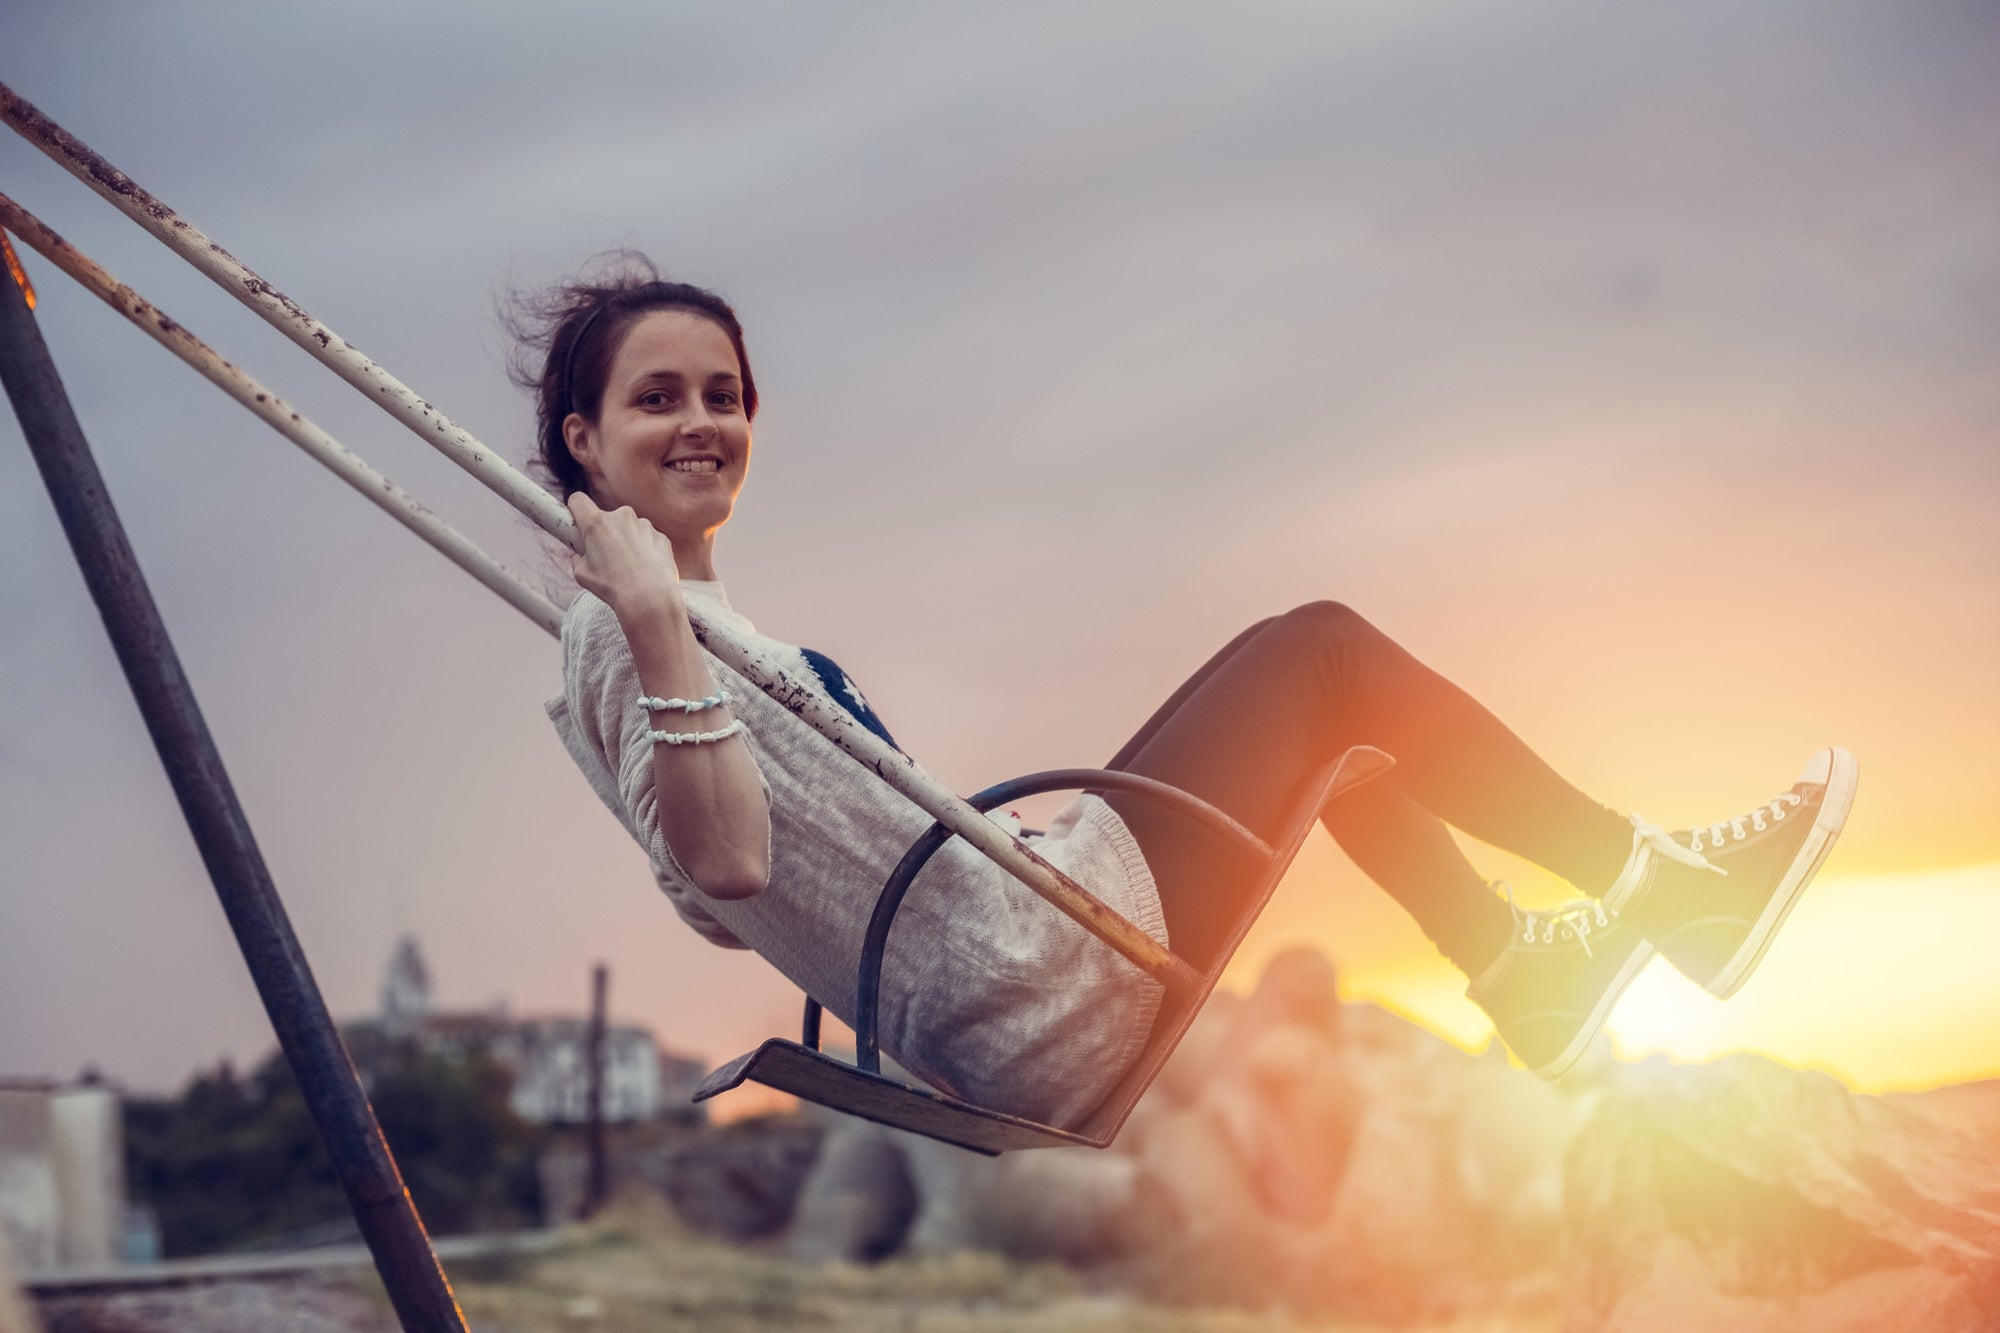 pretty girl swinging on a swing in a park